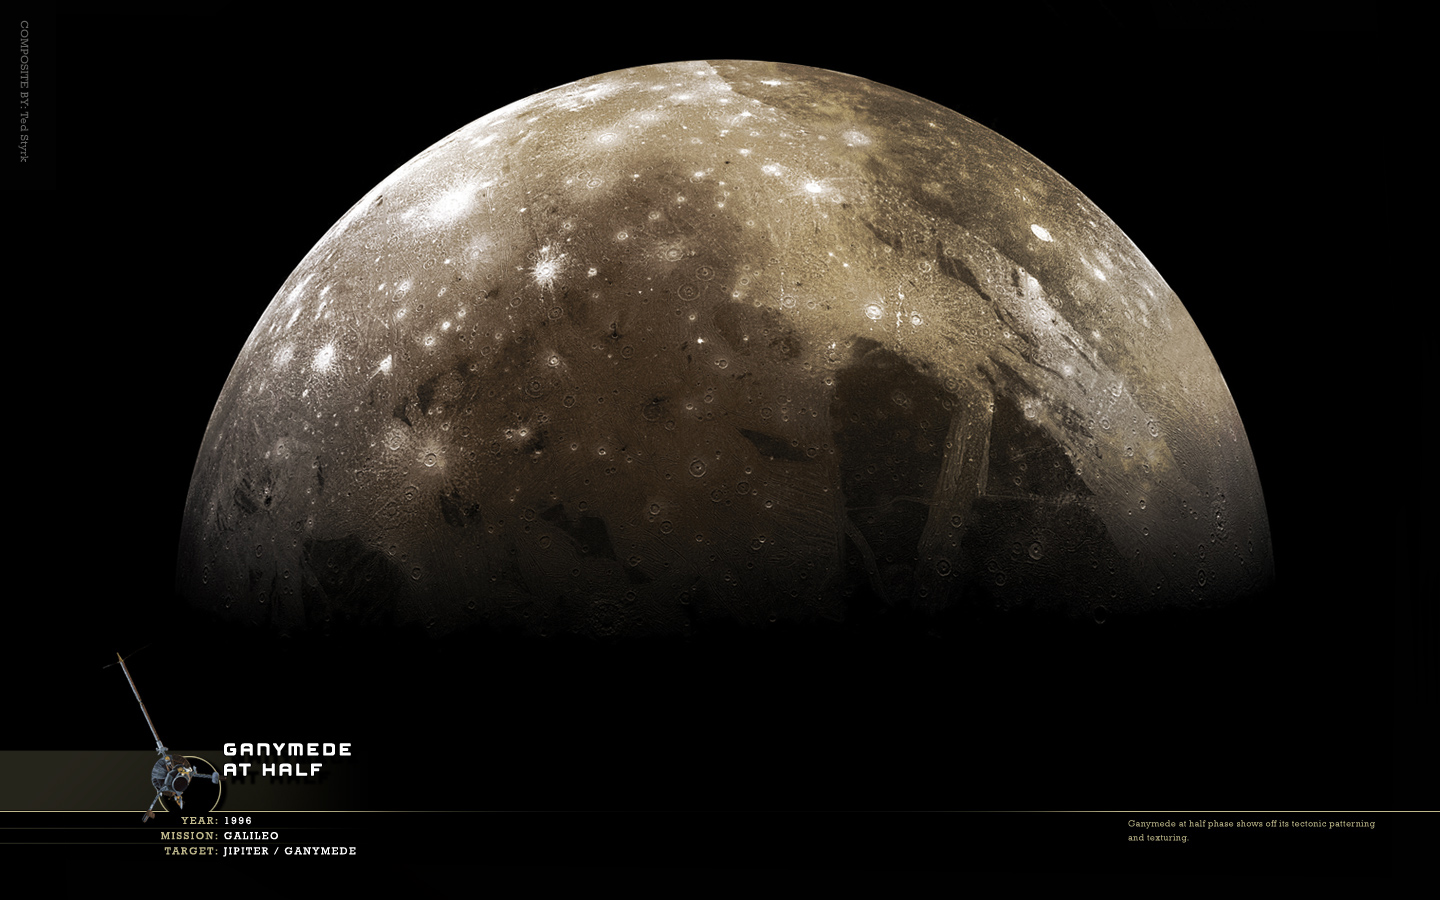 Ganymede Bears Witness - The Third Moon From Jupiter and ...